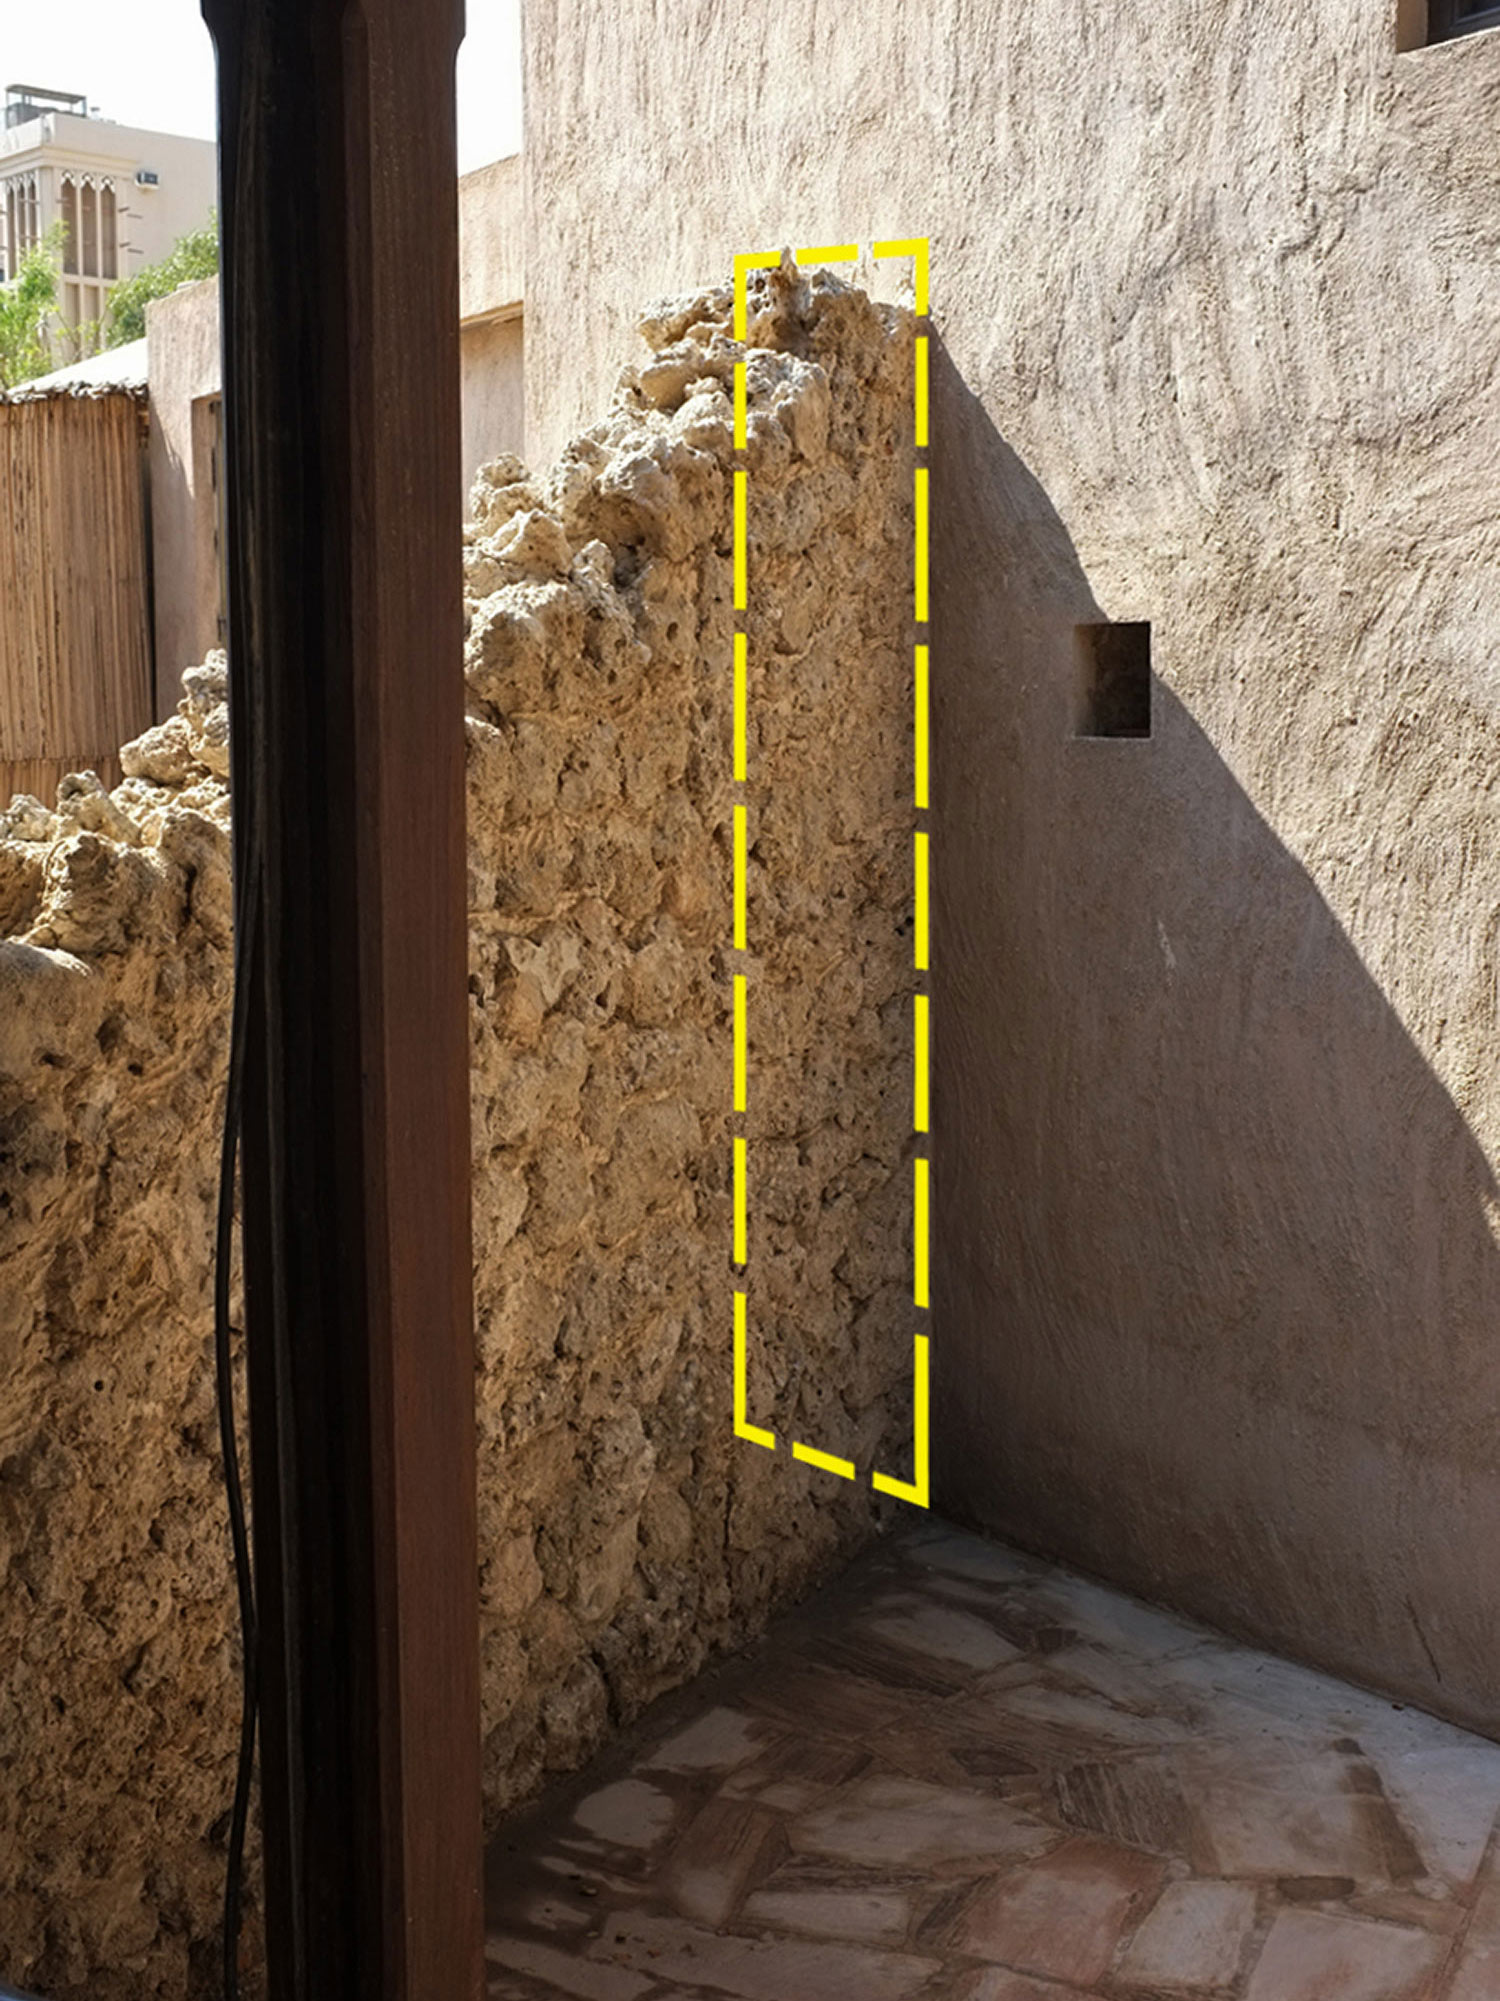 Preserved section of Historic Boundary wall  Al Fahidi Historical Neighbourhood  Highlighted in Yellow are the cross section dimension measuring 250cm (h) x 40cm (w)